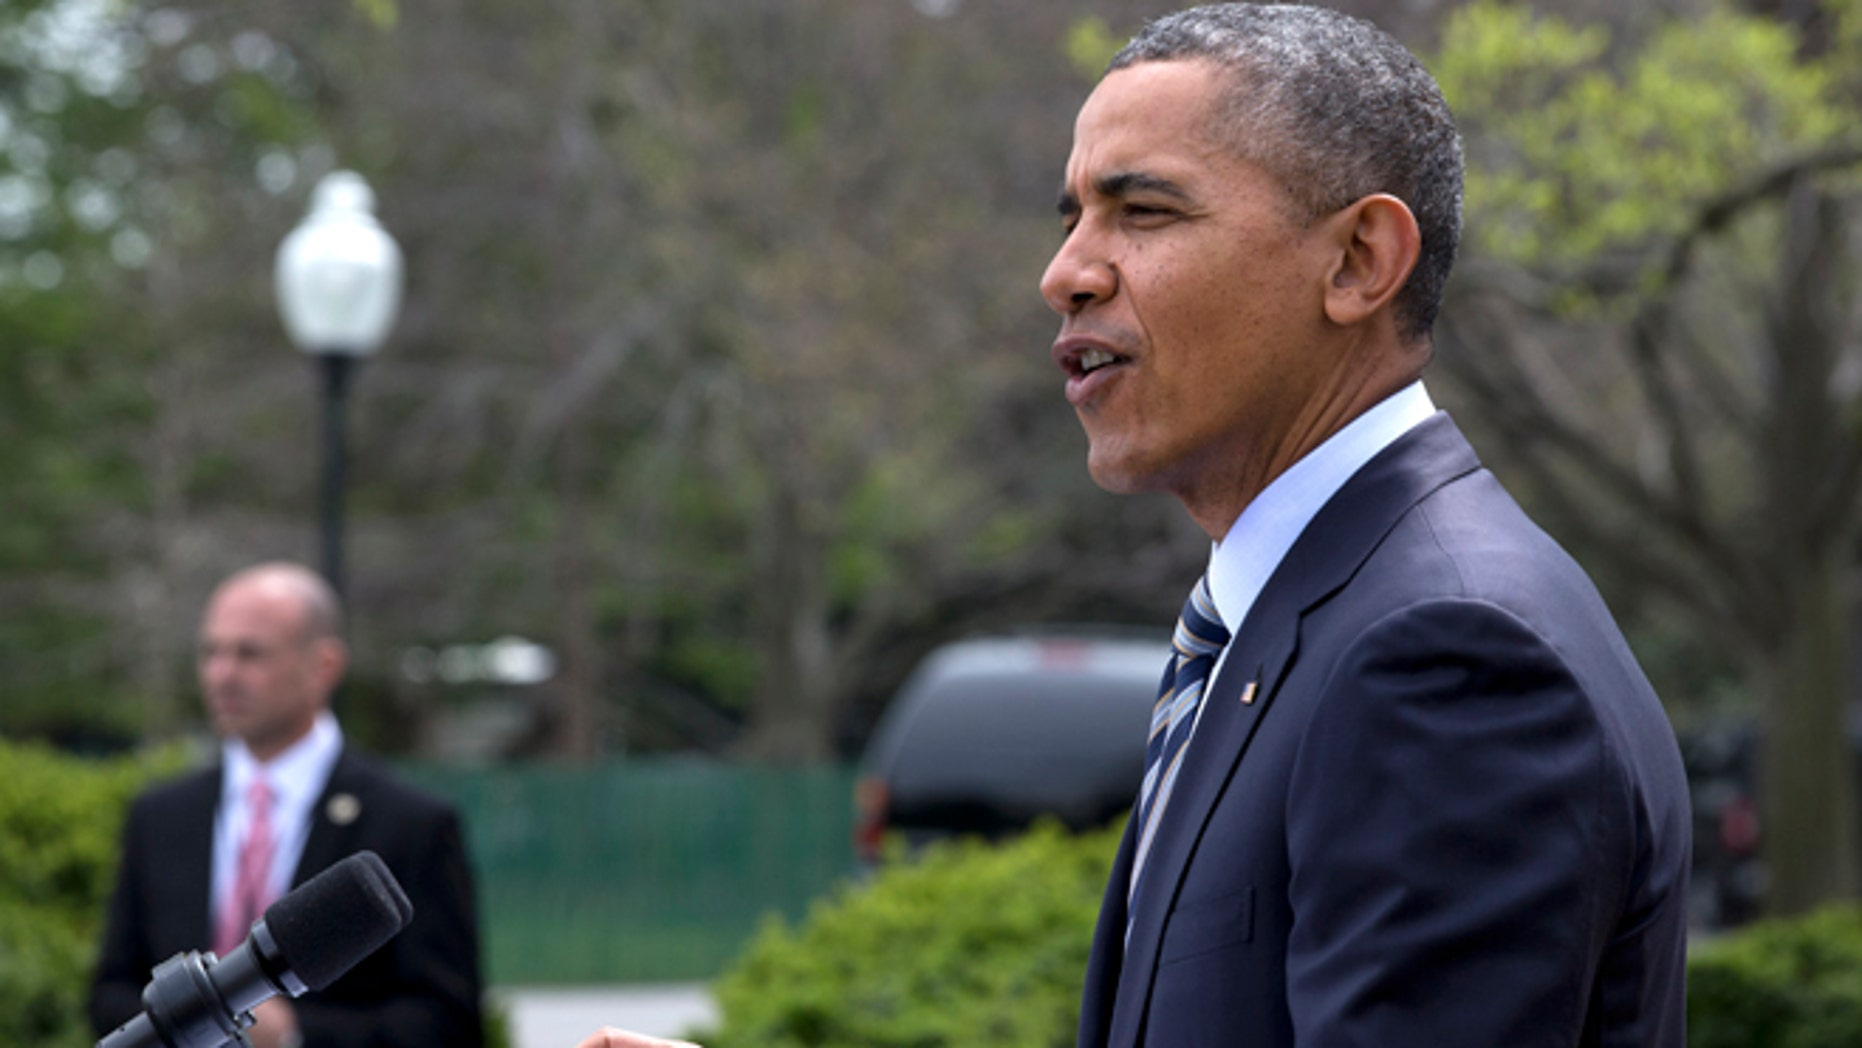 FILE - In this April 18, 2014 file photo, President Barack Obama speaks in the Rose Garden of the White House in Washington. House Speaker John  Boehner of Ohio says Congress is sending President Barack Obama legislation to build the Keystone XL pipeline on Tuesday. The White House is indicating Obama will quickly veto it in private over Republican lawmakers' urging that he sign it. It would be the third veto of Obama's presidency.  (AP Photo/Jacquelyn Martin, File)